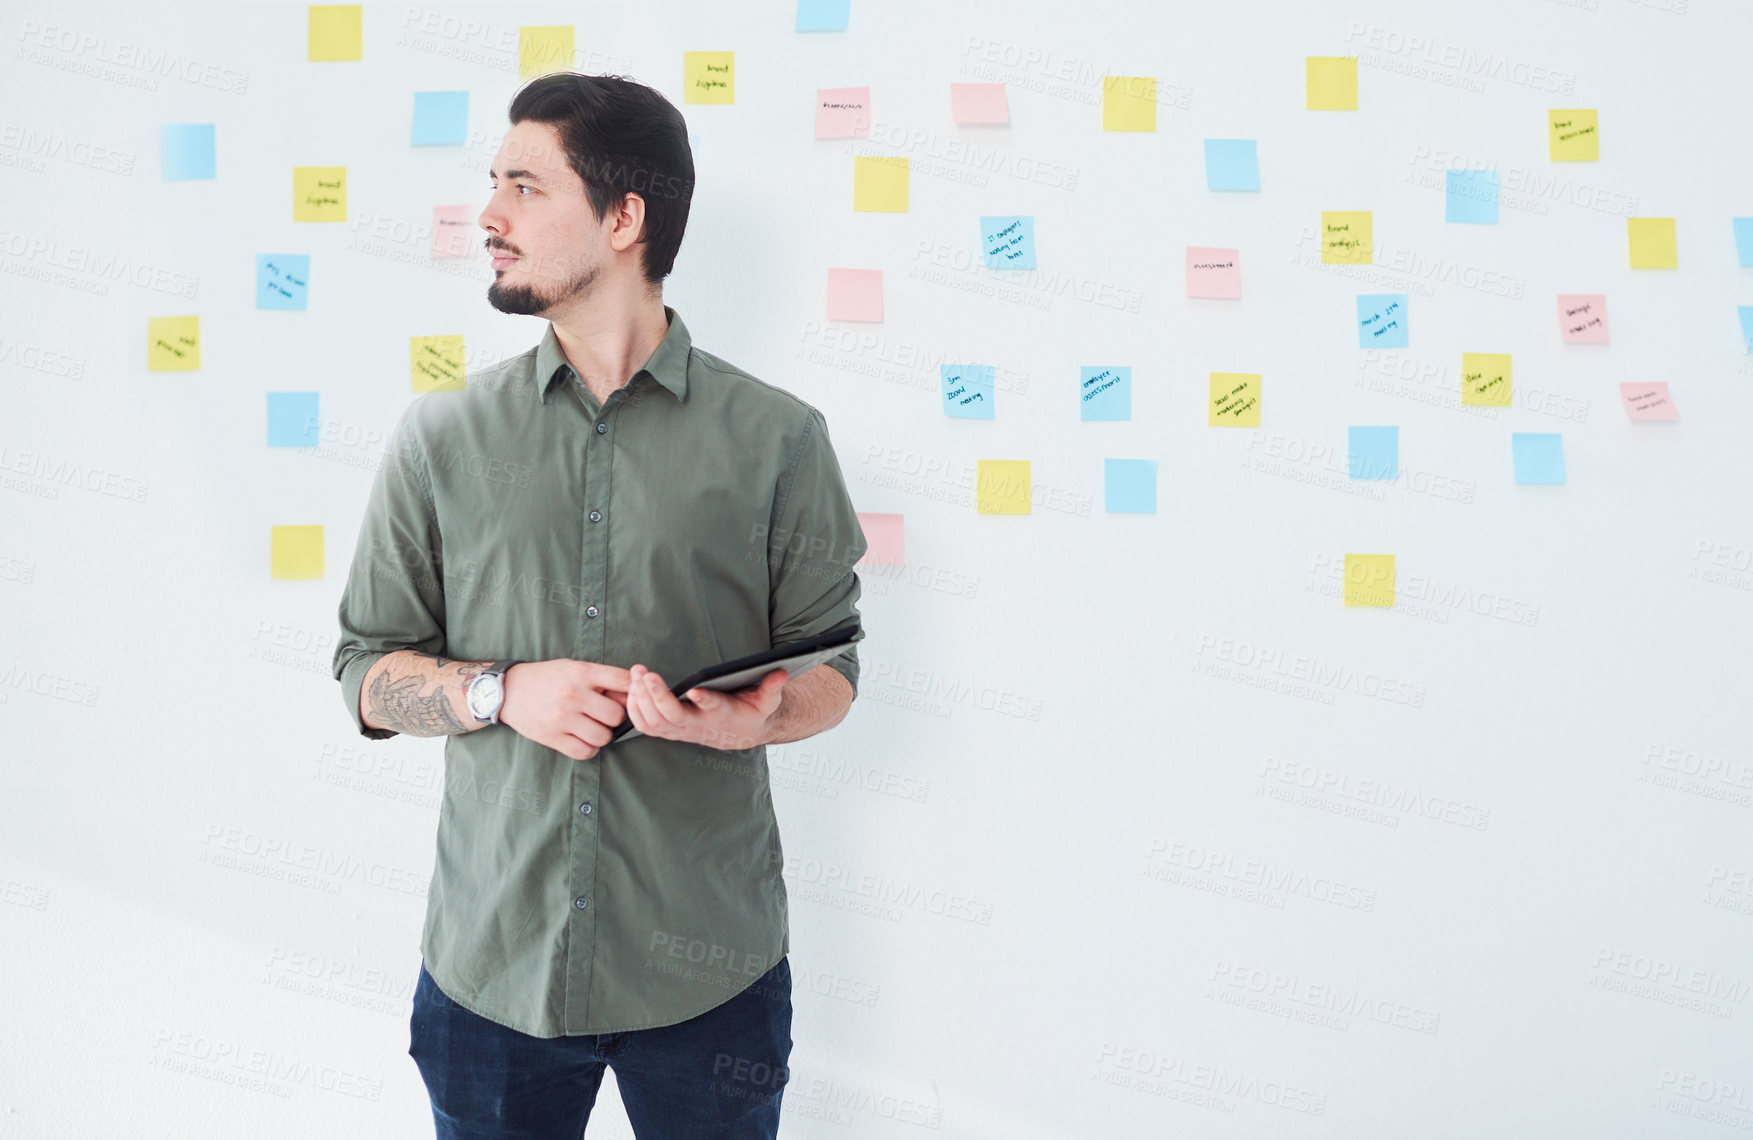 Buy stock photo Shot of a young businessman using a digital tablet while standing against a wall with notes in an office